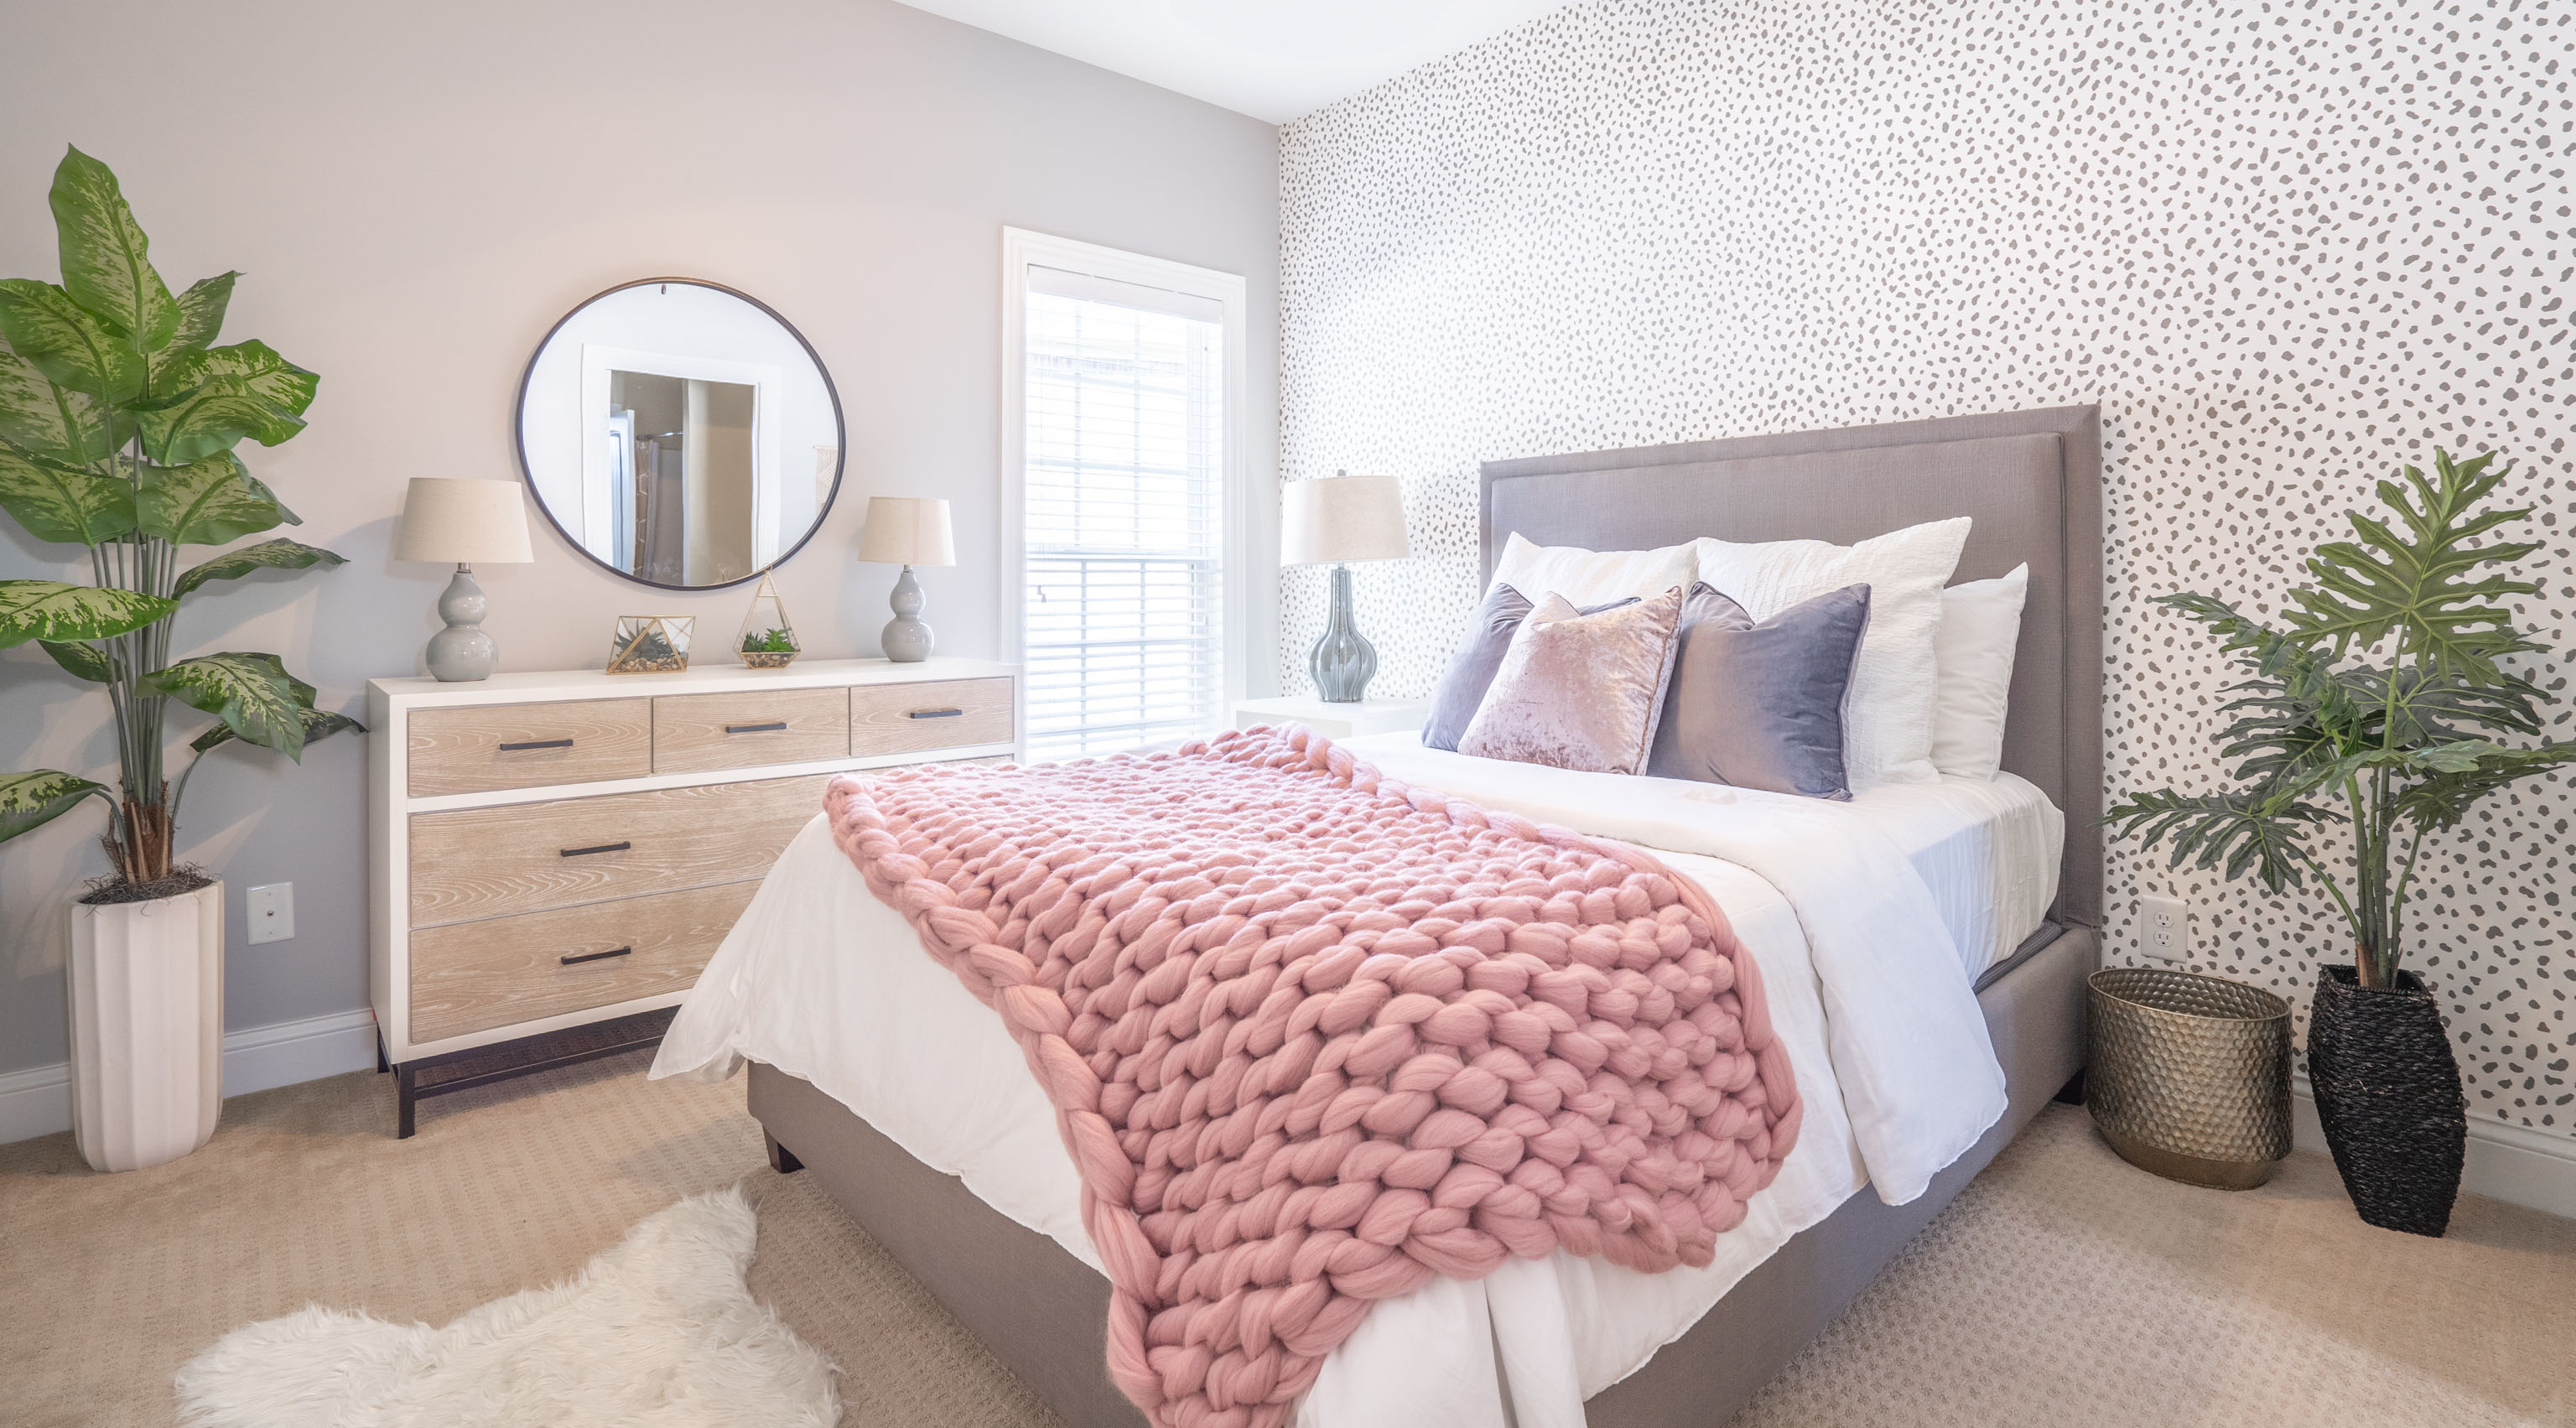 Teen Bedroom Suite Design by Sarah Smalling Interiors, LLC located at Boulder Court in Bowling Green